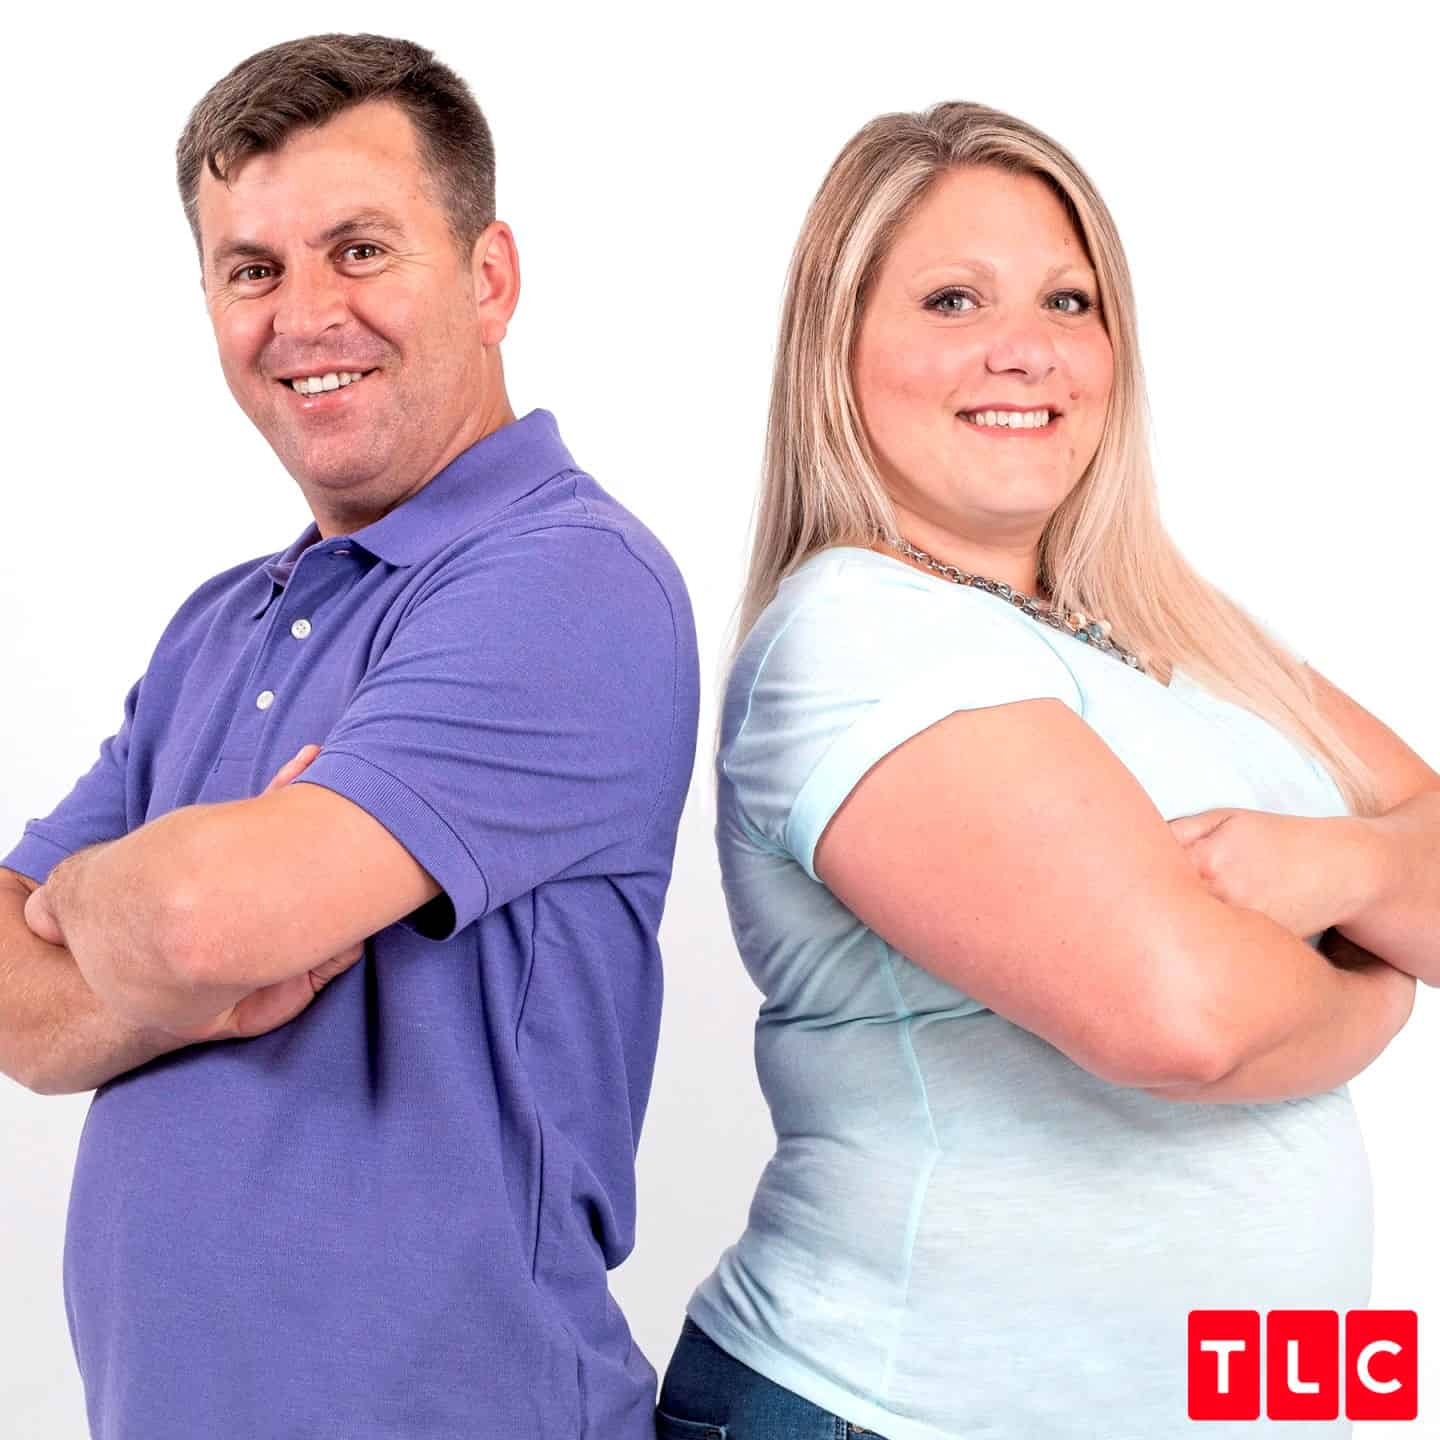 TLC 90 Day Fiance Season 7 Cast Mursel and Anna